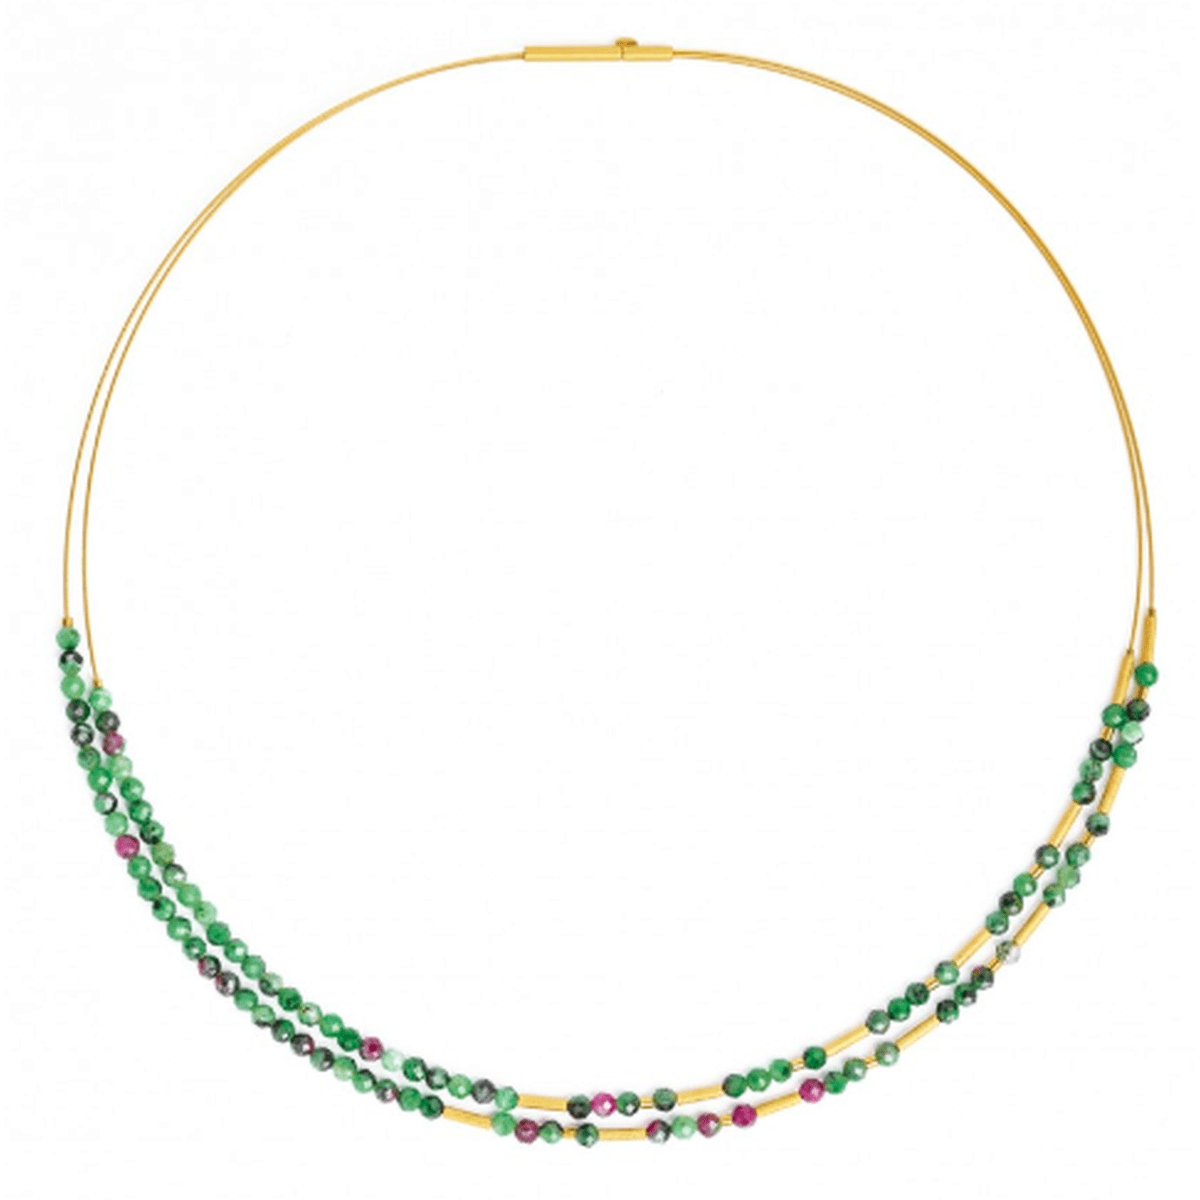 Clinzo Ruby Zoisite Necklace - 85228086-Bernd Wolf-Renee Taylor Gallery